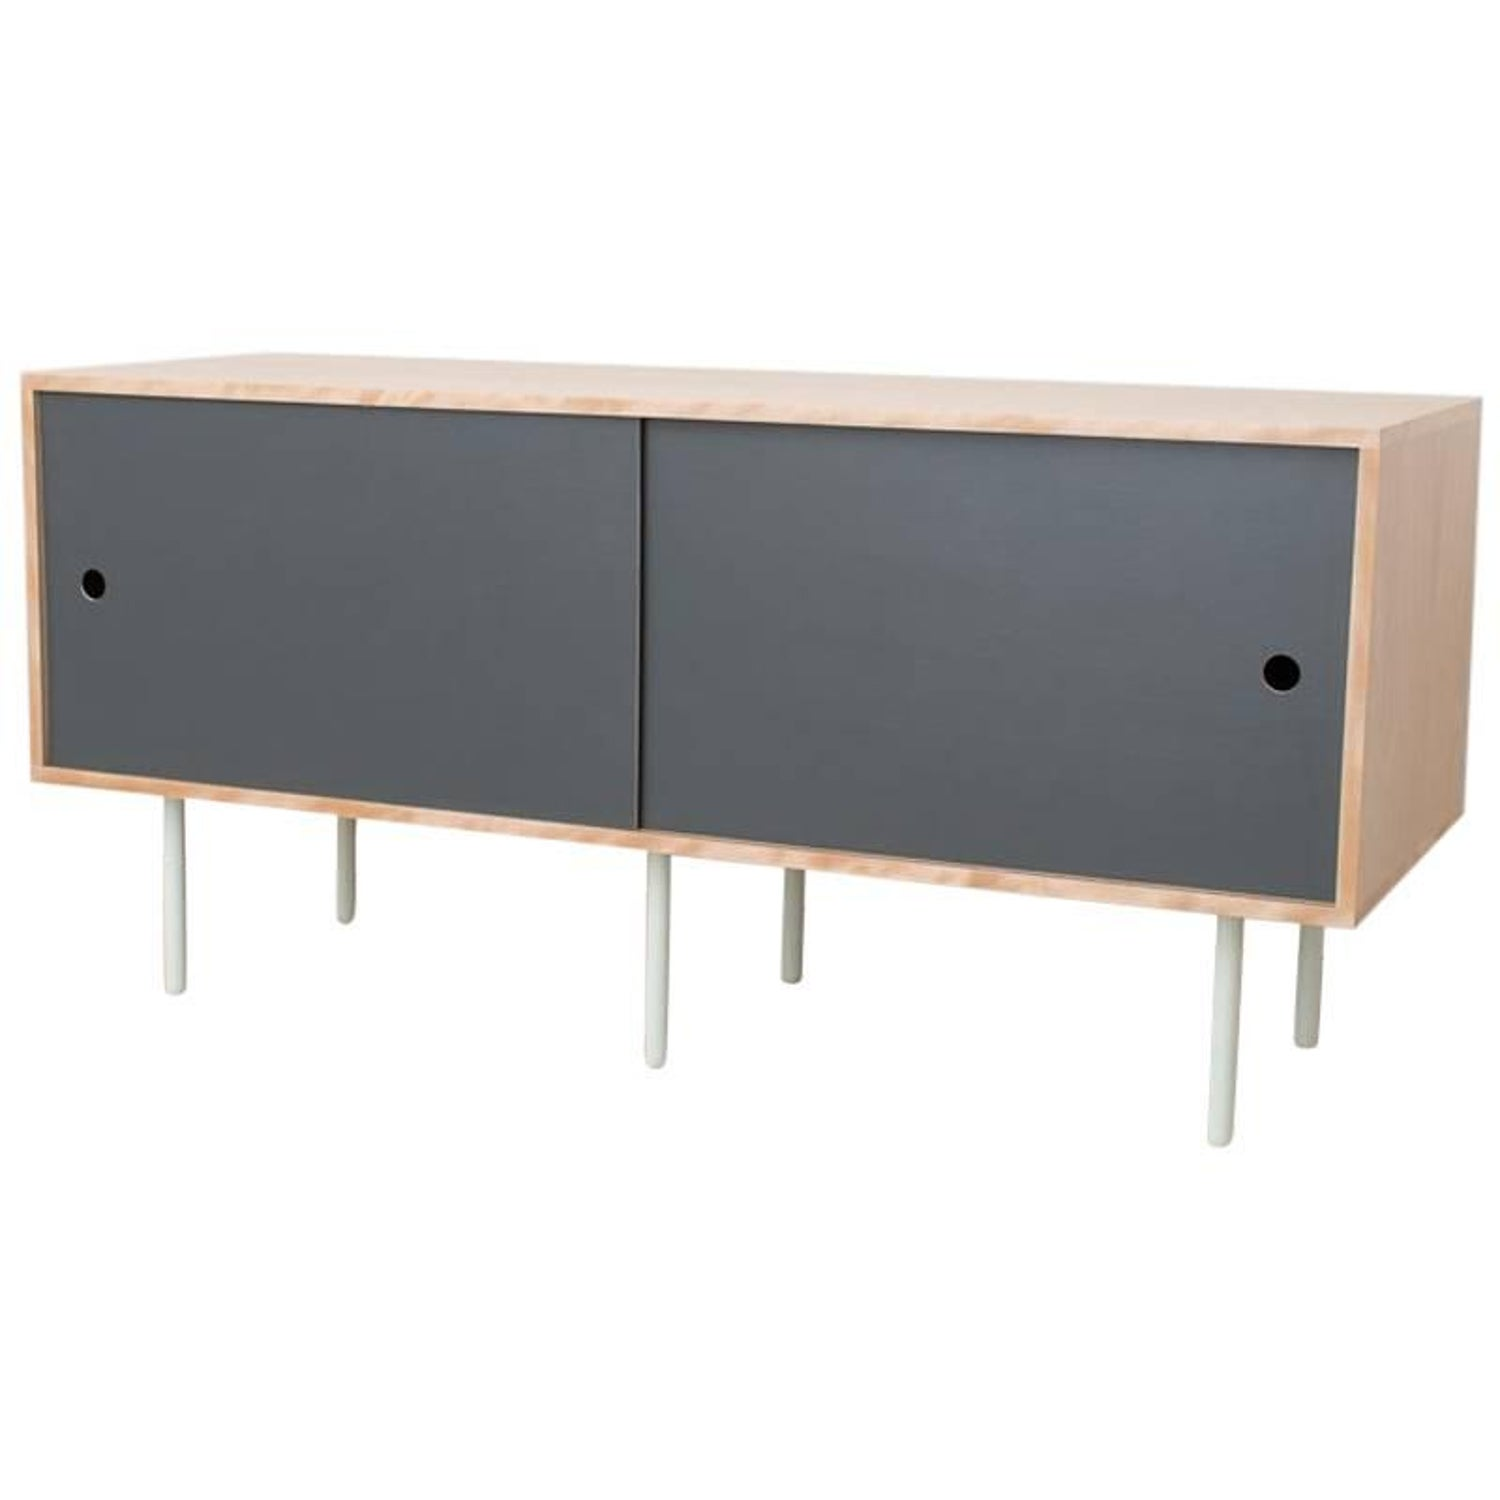 Basic Bitch Contemporary Birch Credenza Sideboard Gray Laminate Sliders